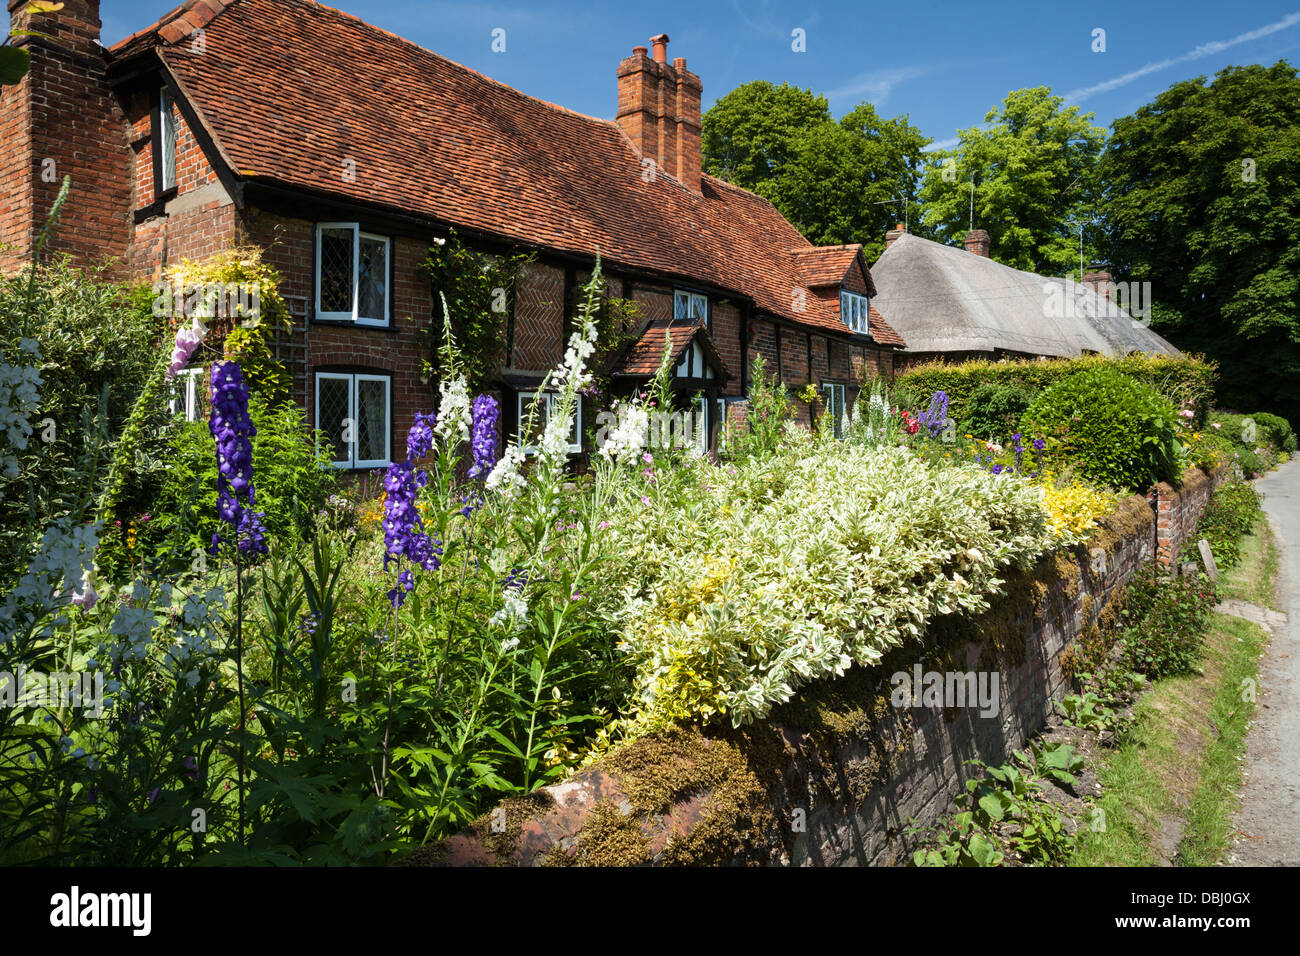 A traditionally built red brick and timber-framed house dating from 1590 with a pretty cottage garden, Monks Risborough, - Stock Image